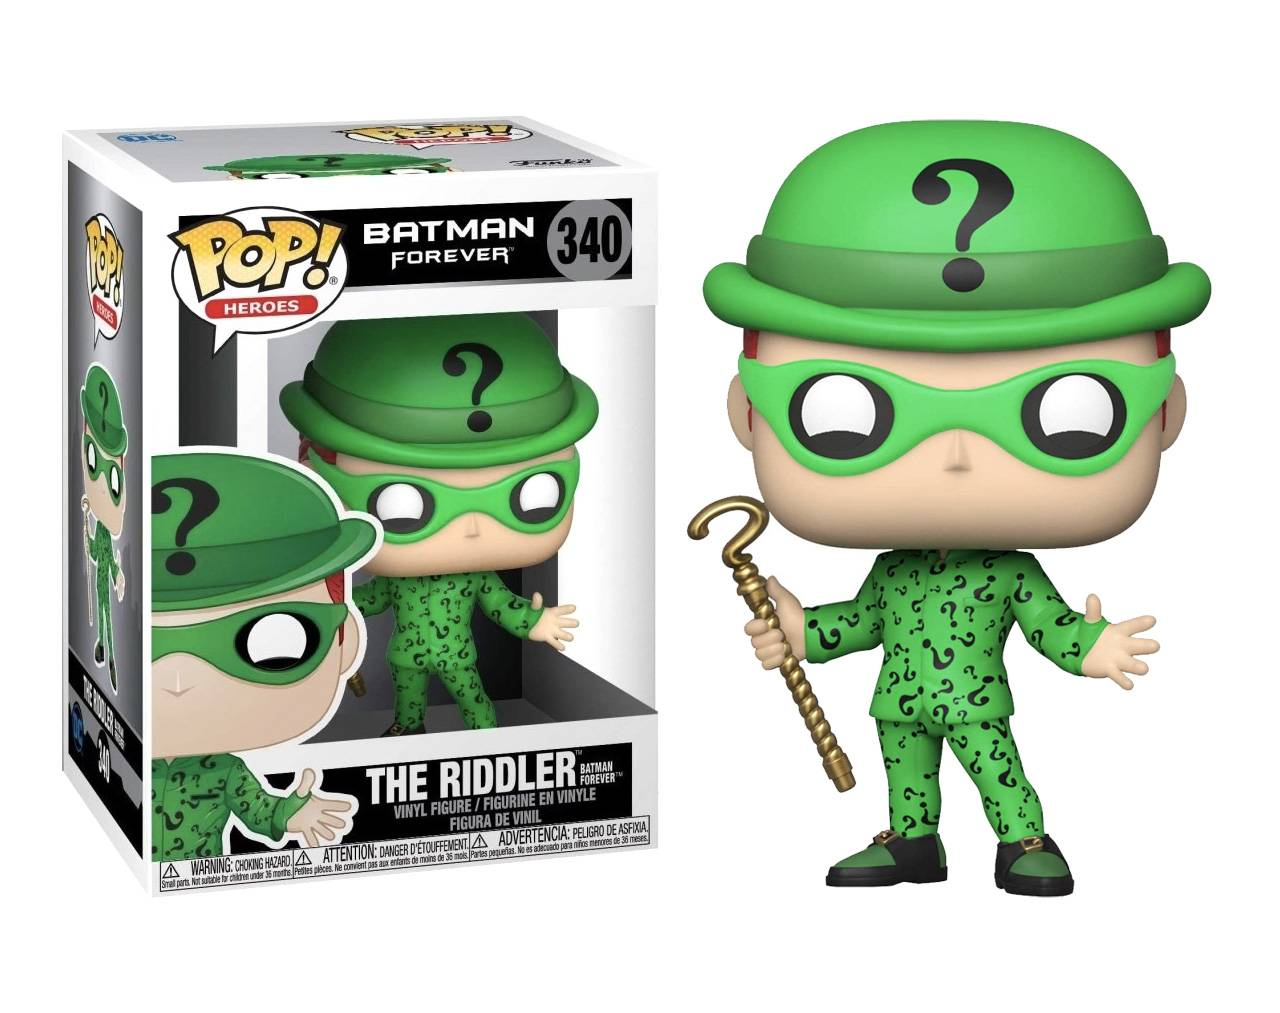 The Riddler (Batman Forever) Pop! Vinyl